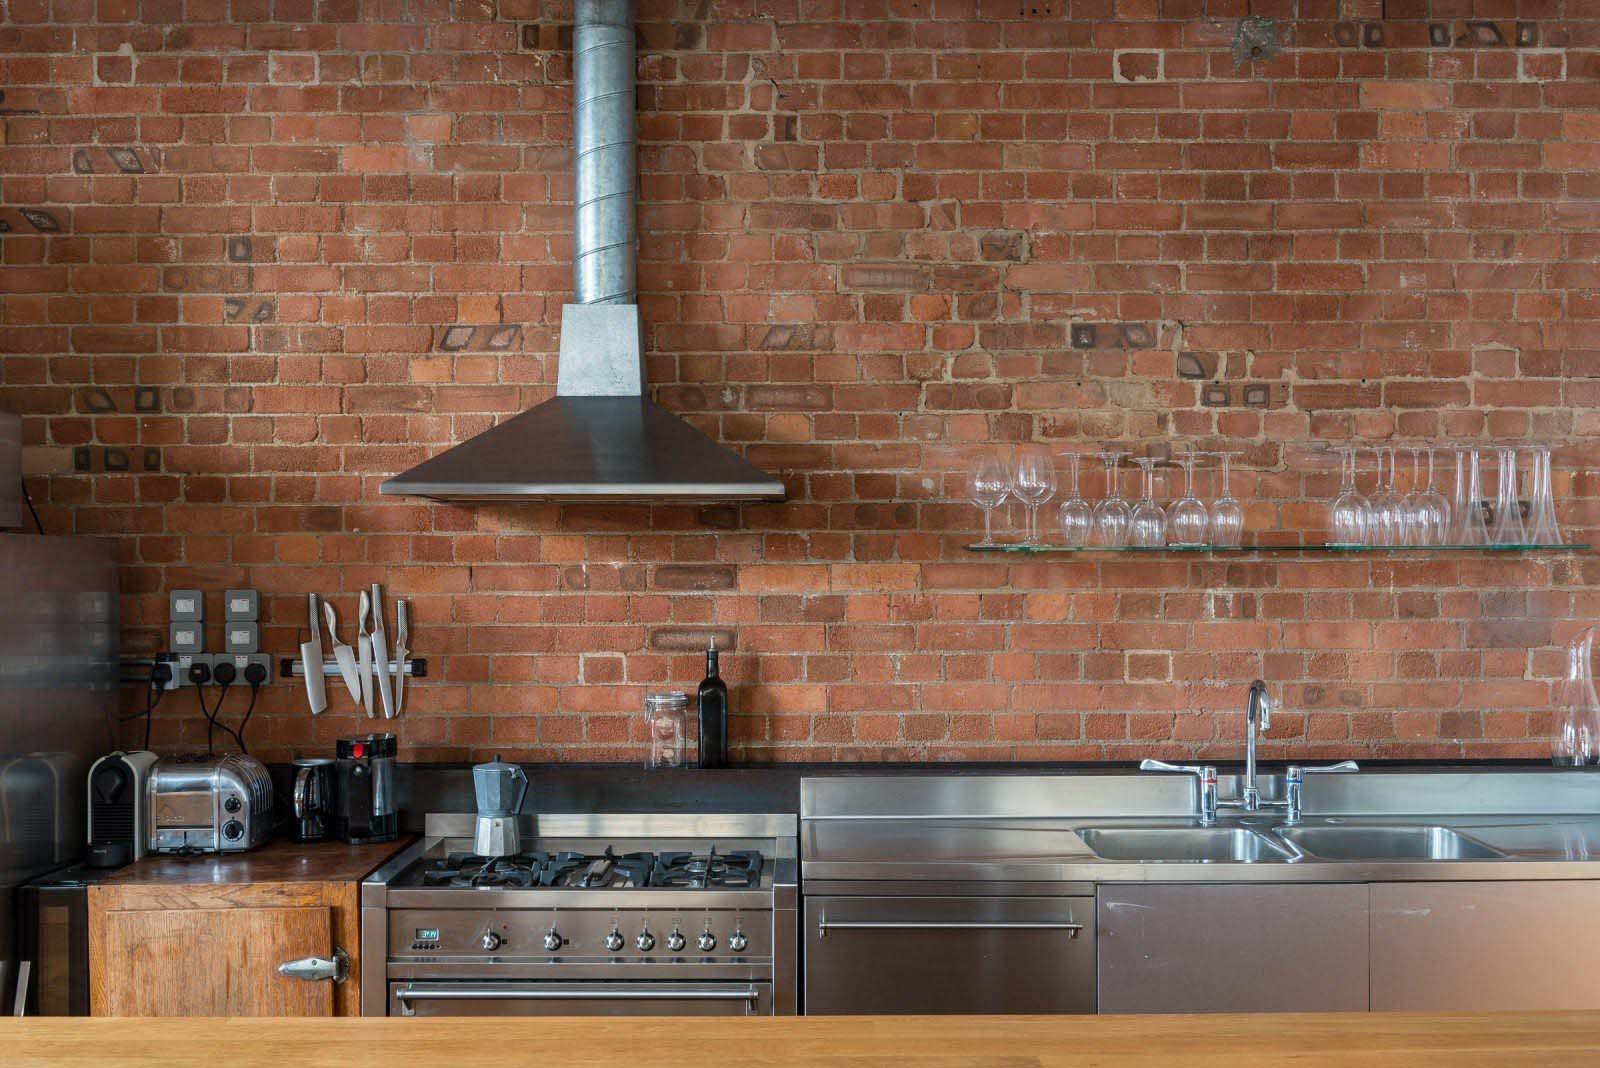 red brick kitchen with stainless steel appliances and steel countertop wood cabinets